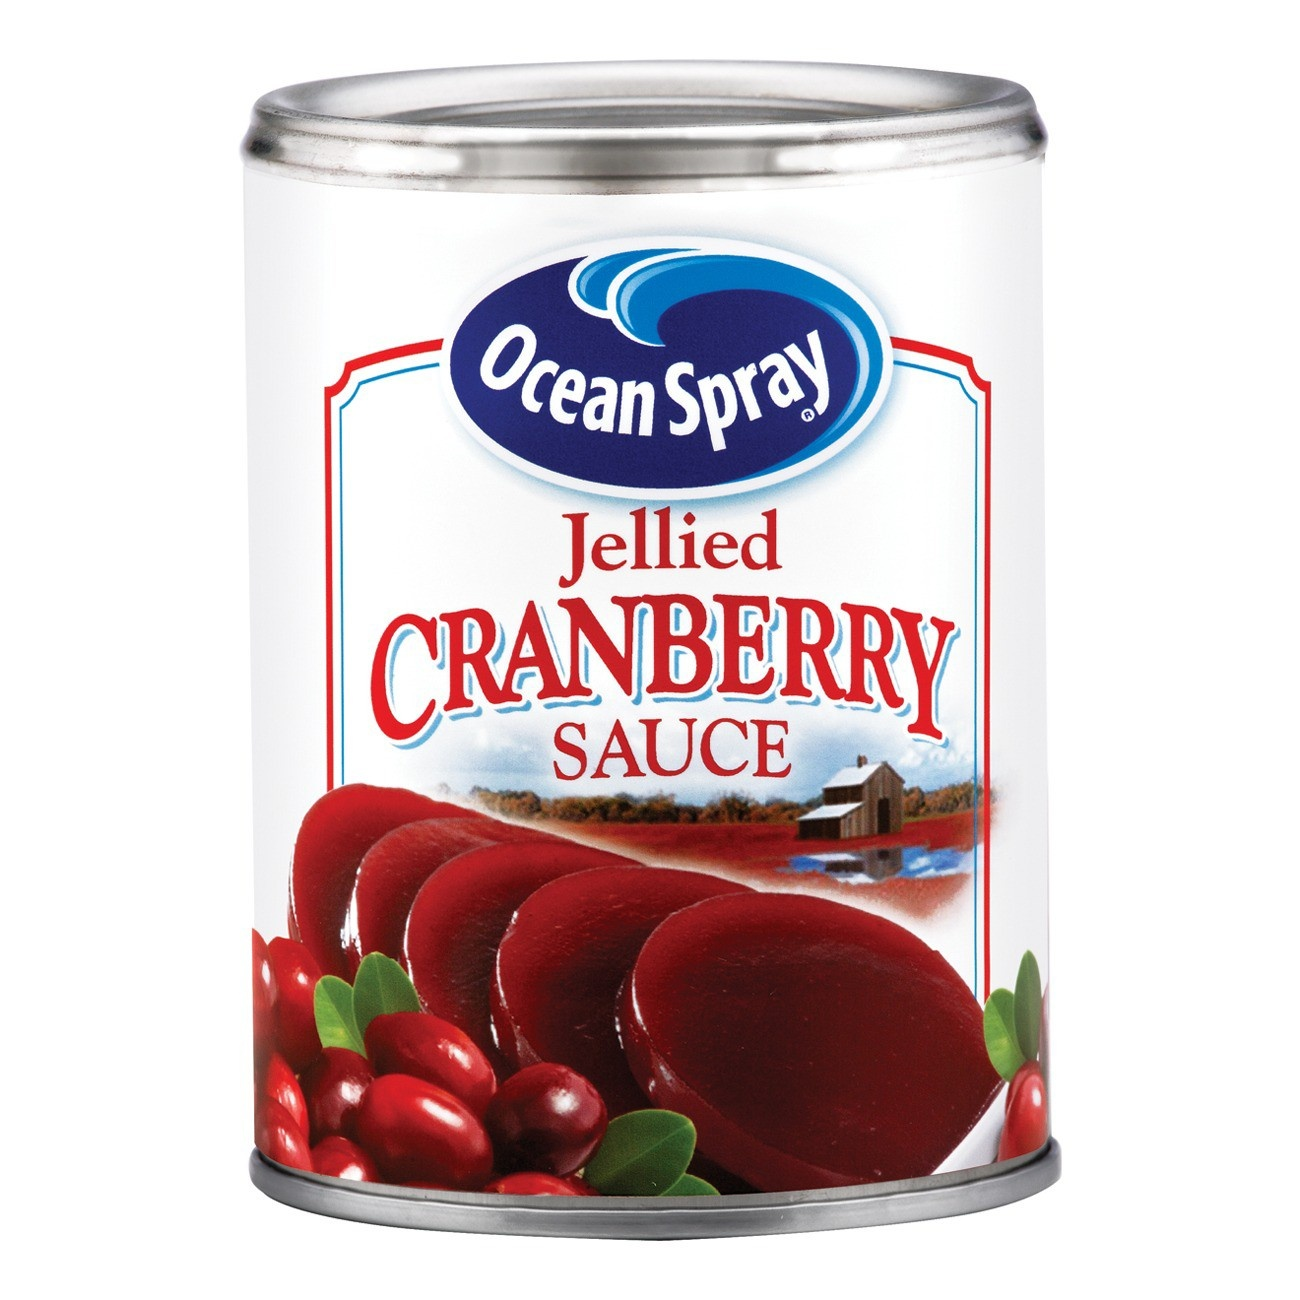 slide 1 of 3, Ocean Spray Jellied Cranberry Sauce,